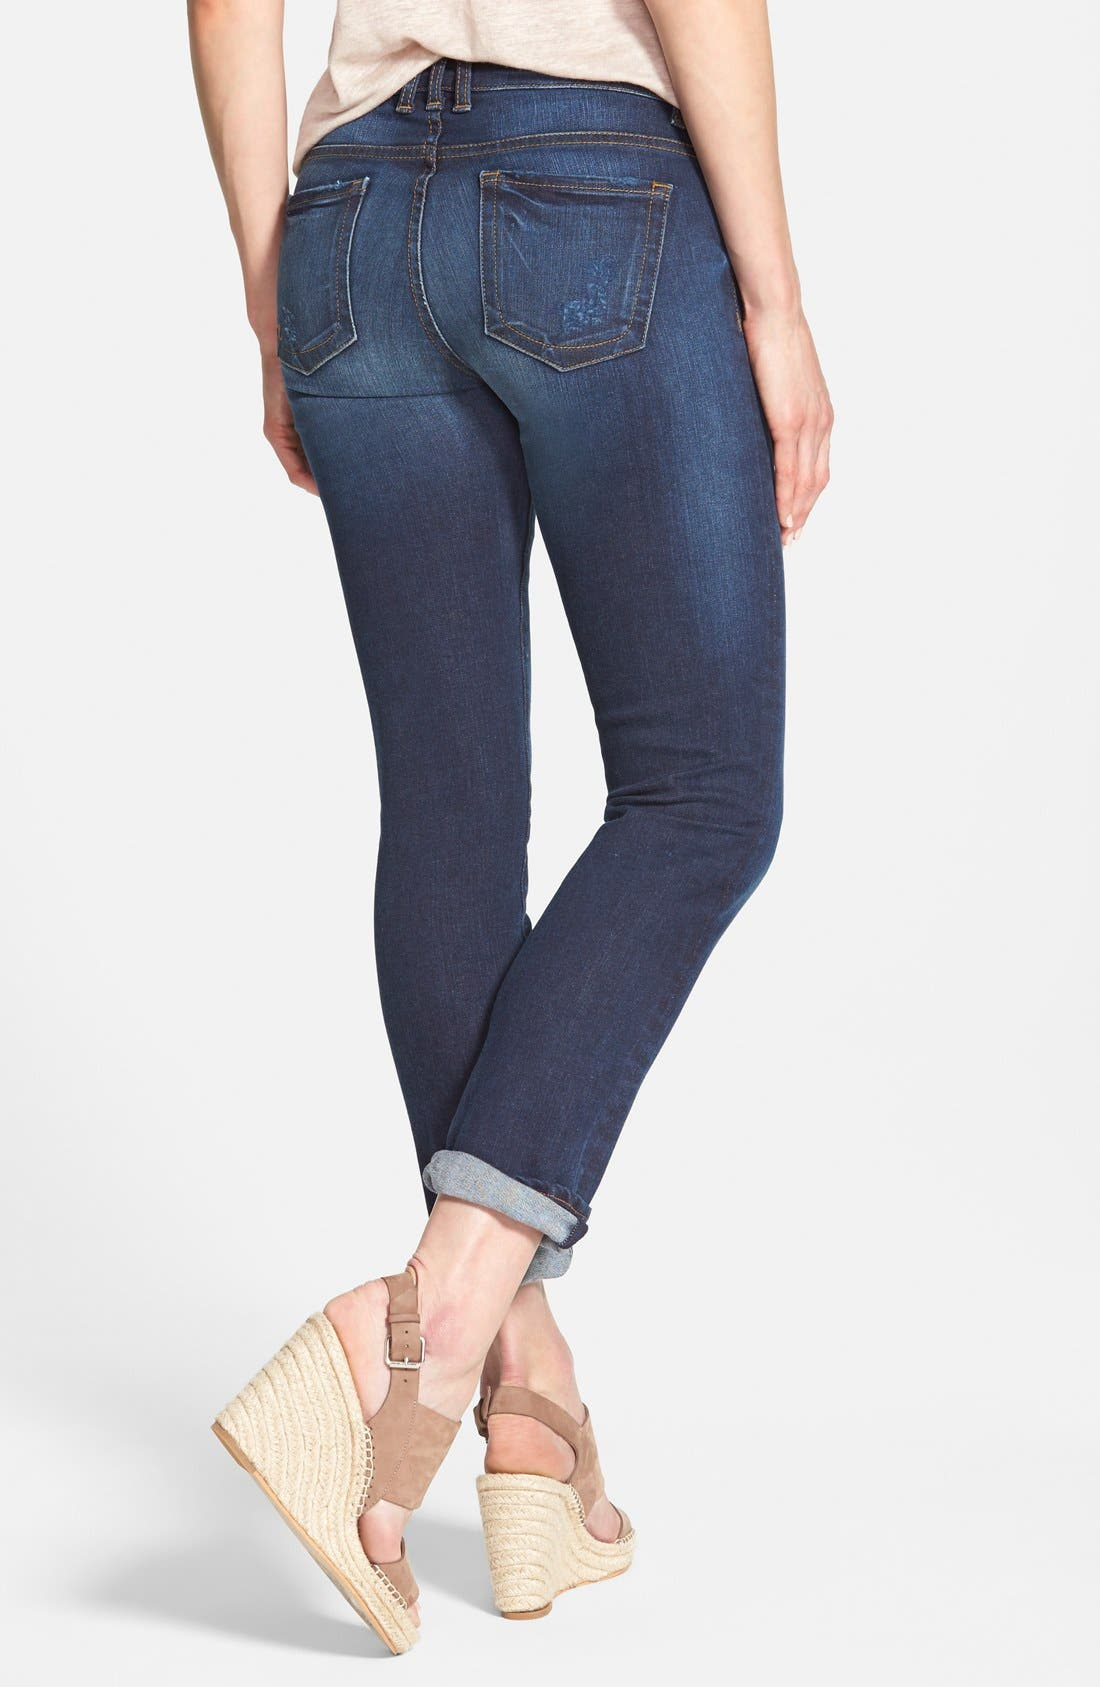 Alternate Image 3  - KUT from the Kloth 'Catherine' Boyfriend Jeans (Easily) (Regular & Petite)